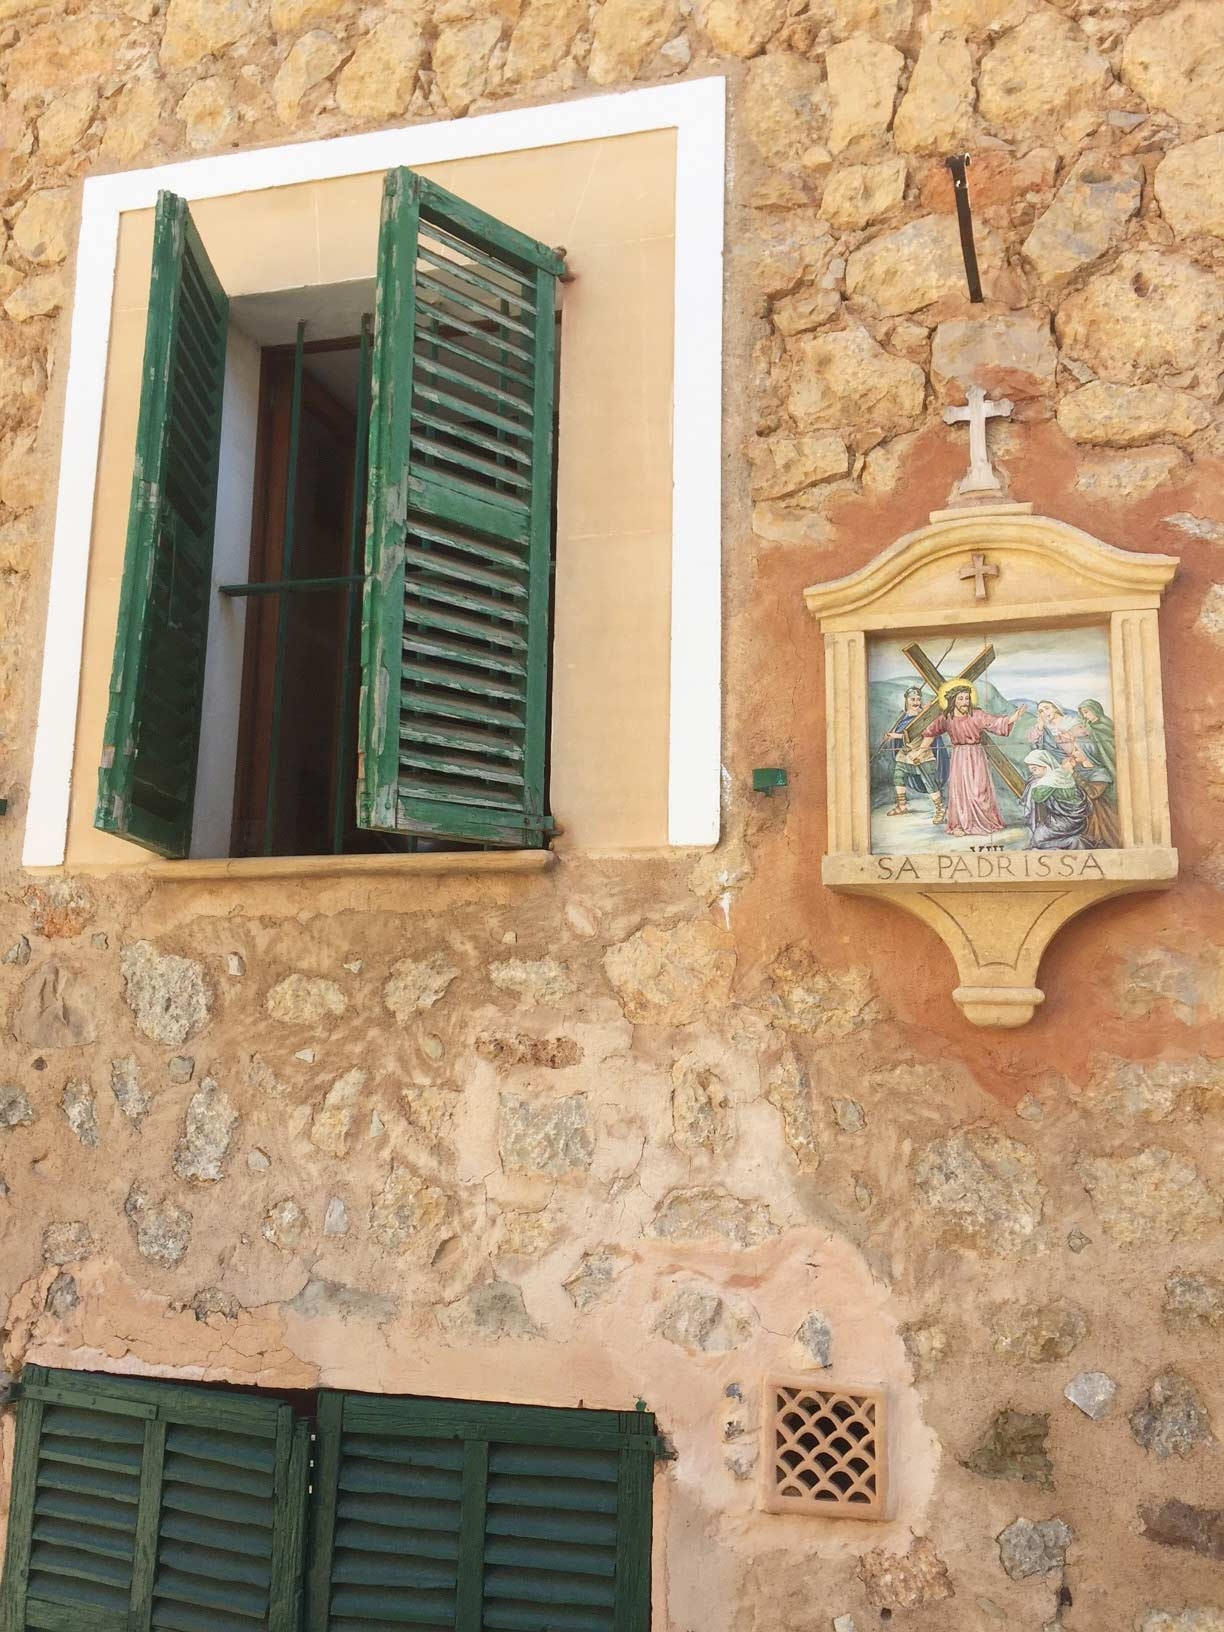 An old stone building with green shutters and religious paintings in the bohemian village of Deia